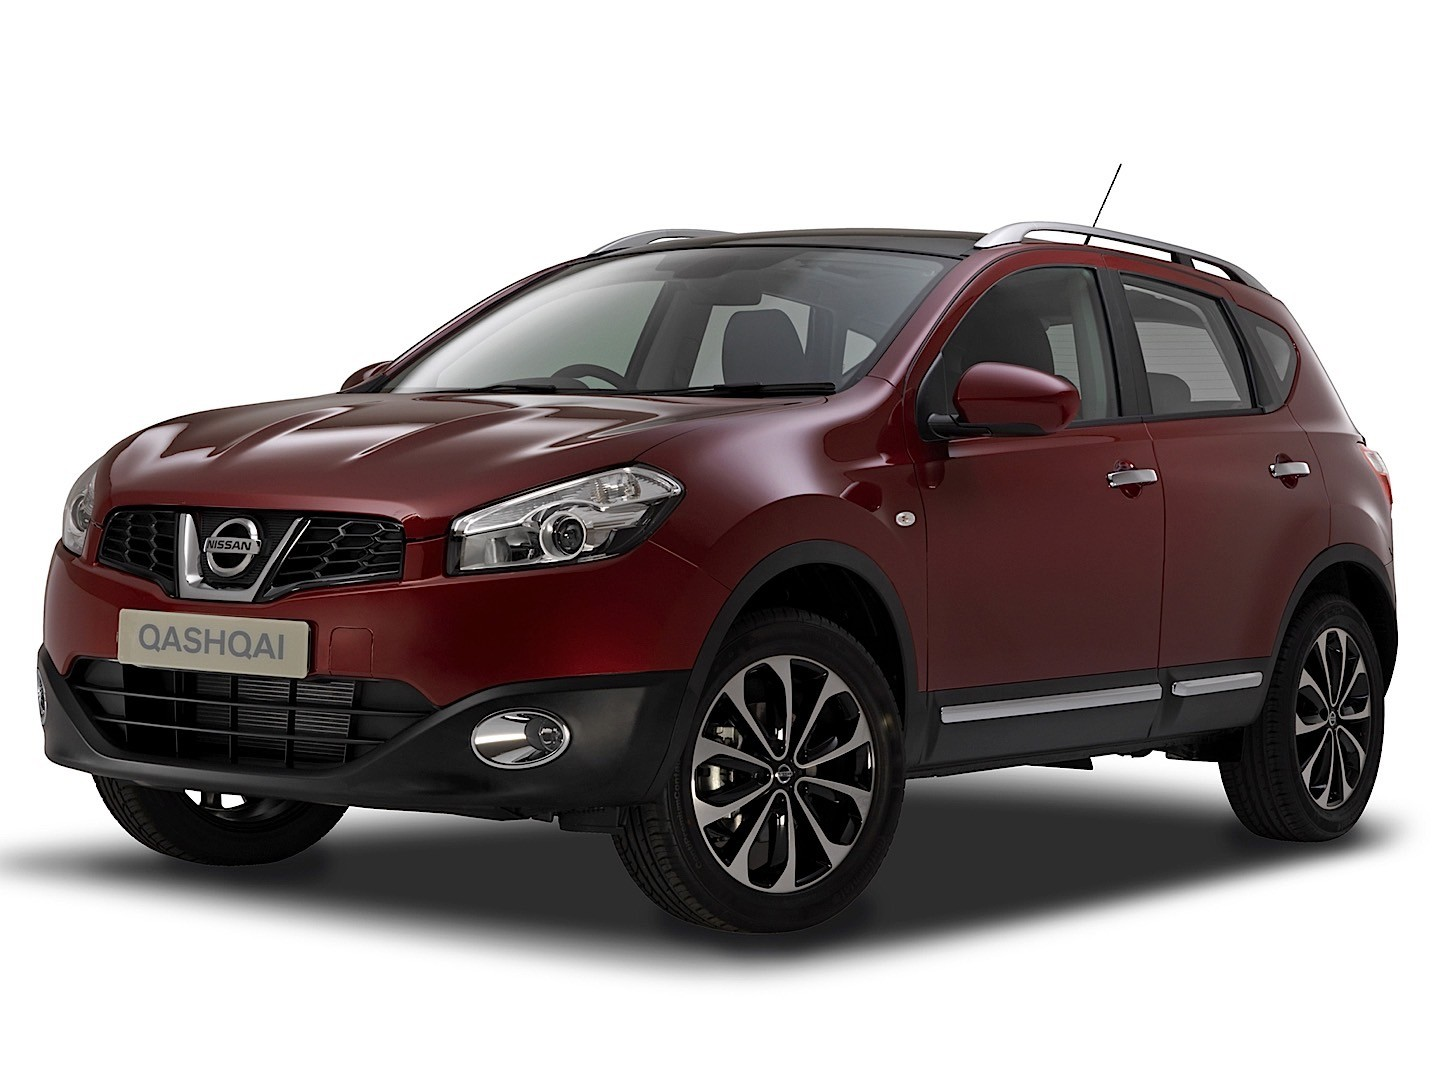 nissan qashqai specs 2010 2011 2012 2013 autoevolution. Black Bedroom Furniture Sets. Home Design Ideas